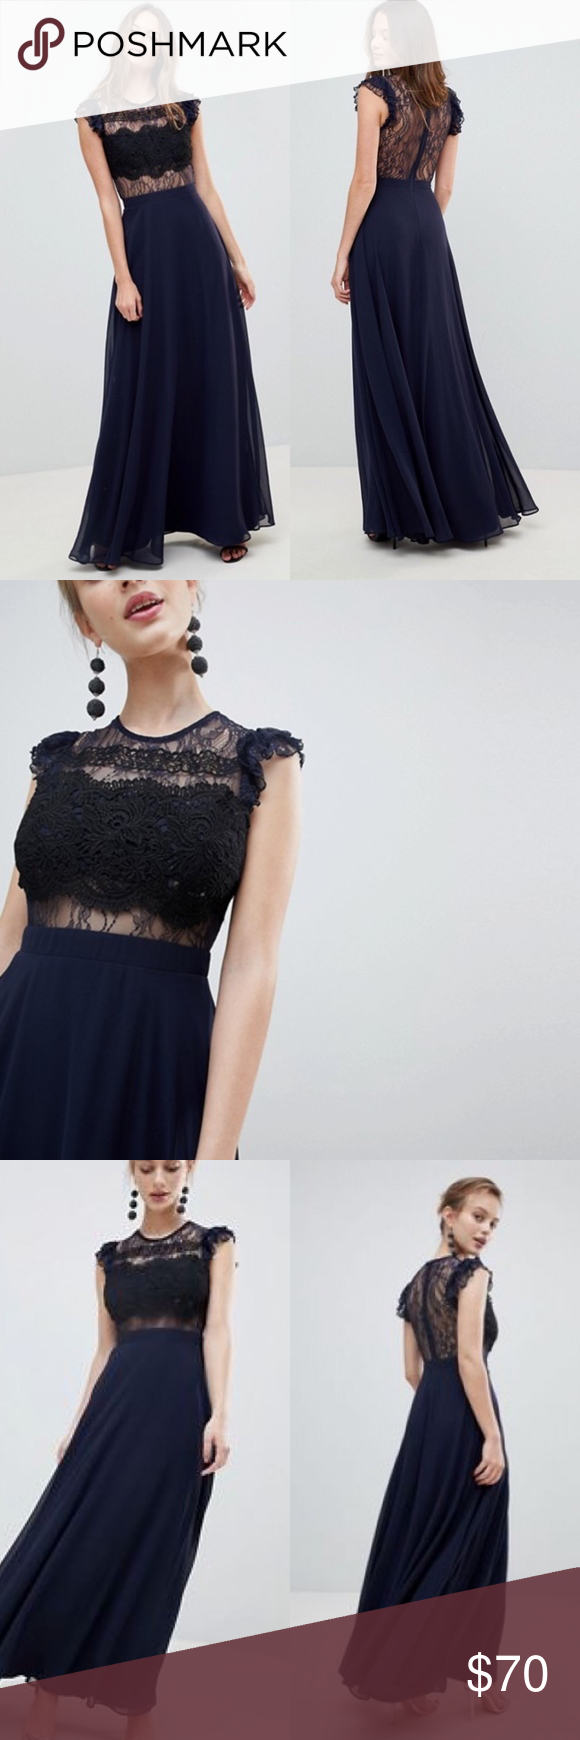 1e880bcce8a ASOS Lace Maxi Dress with Lace Frill Sleeve Flutte Be the best-dressed  guest Round